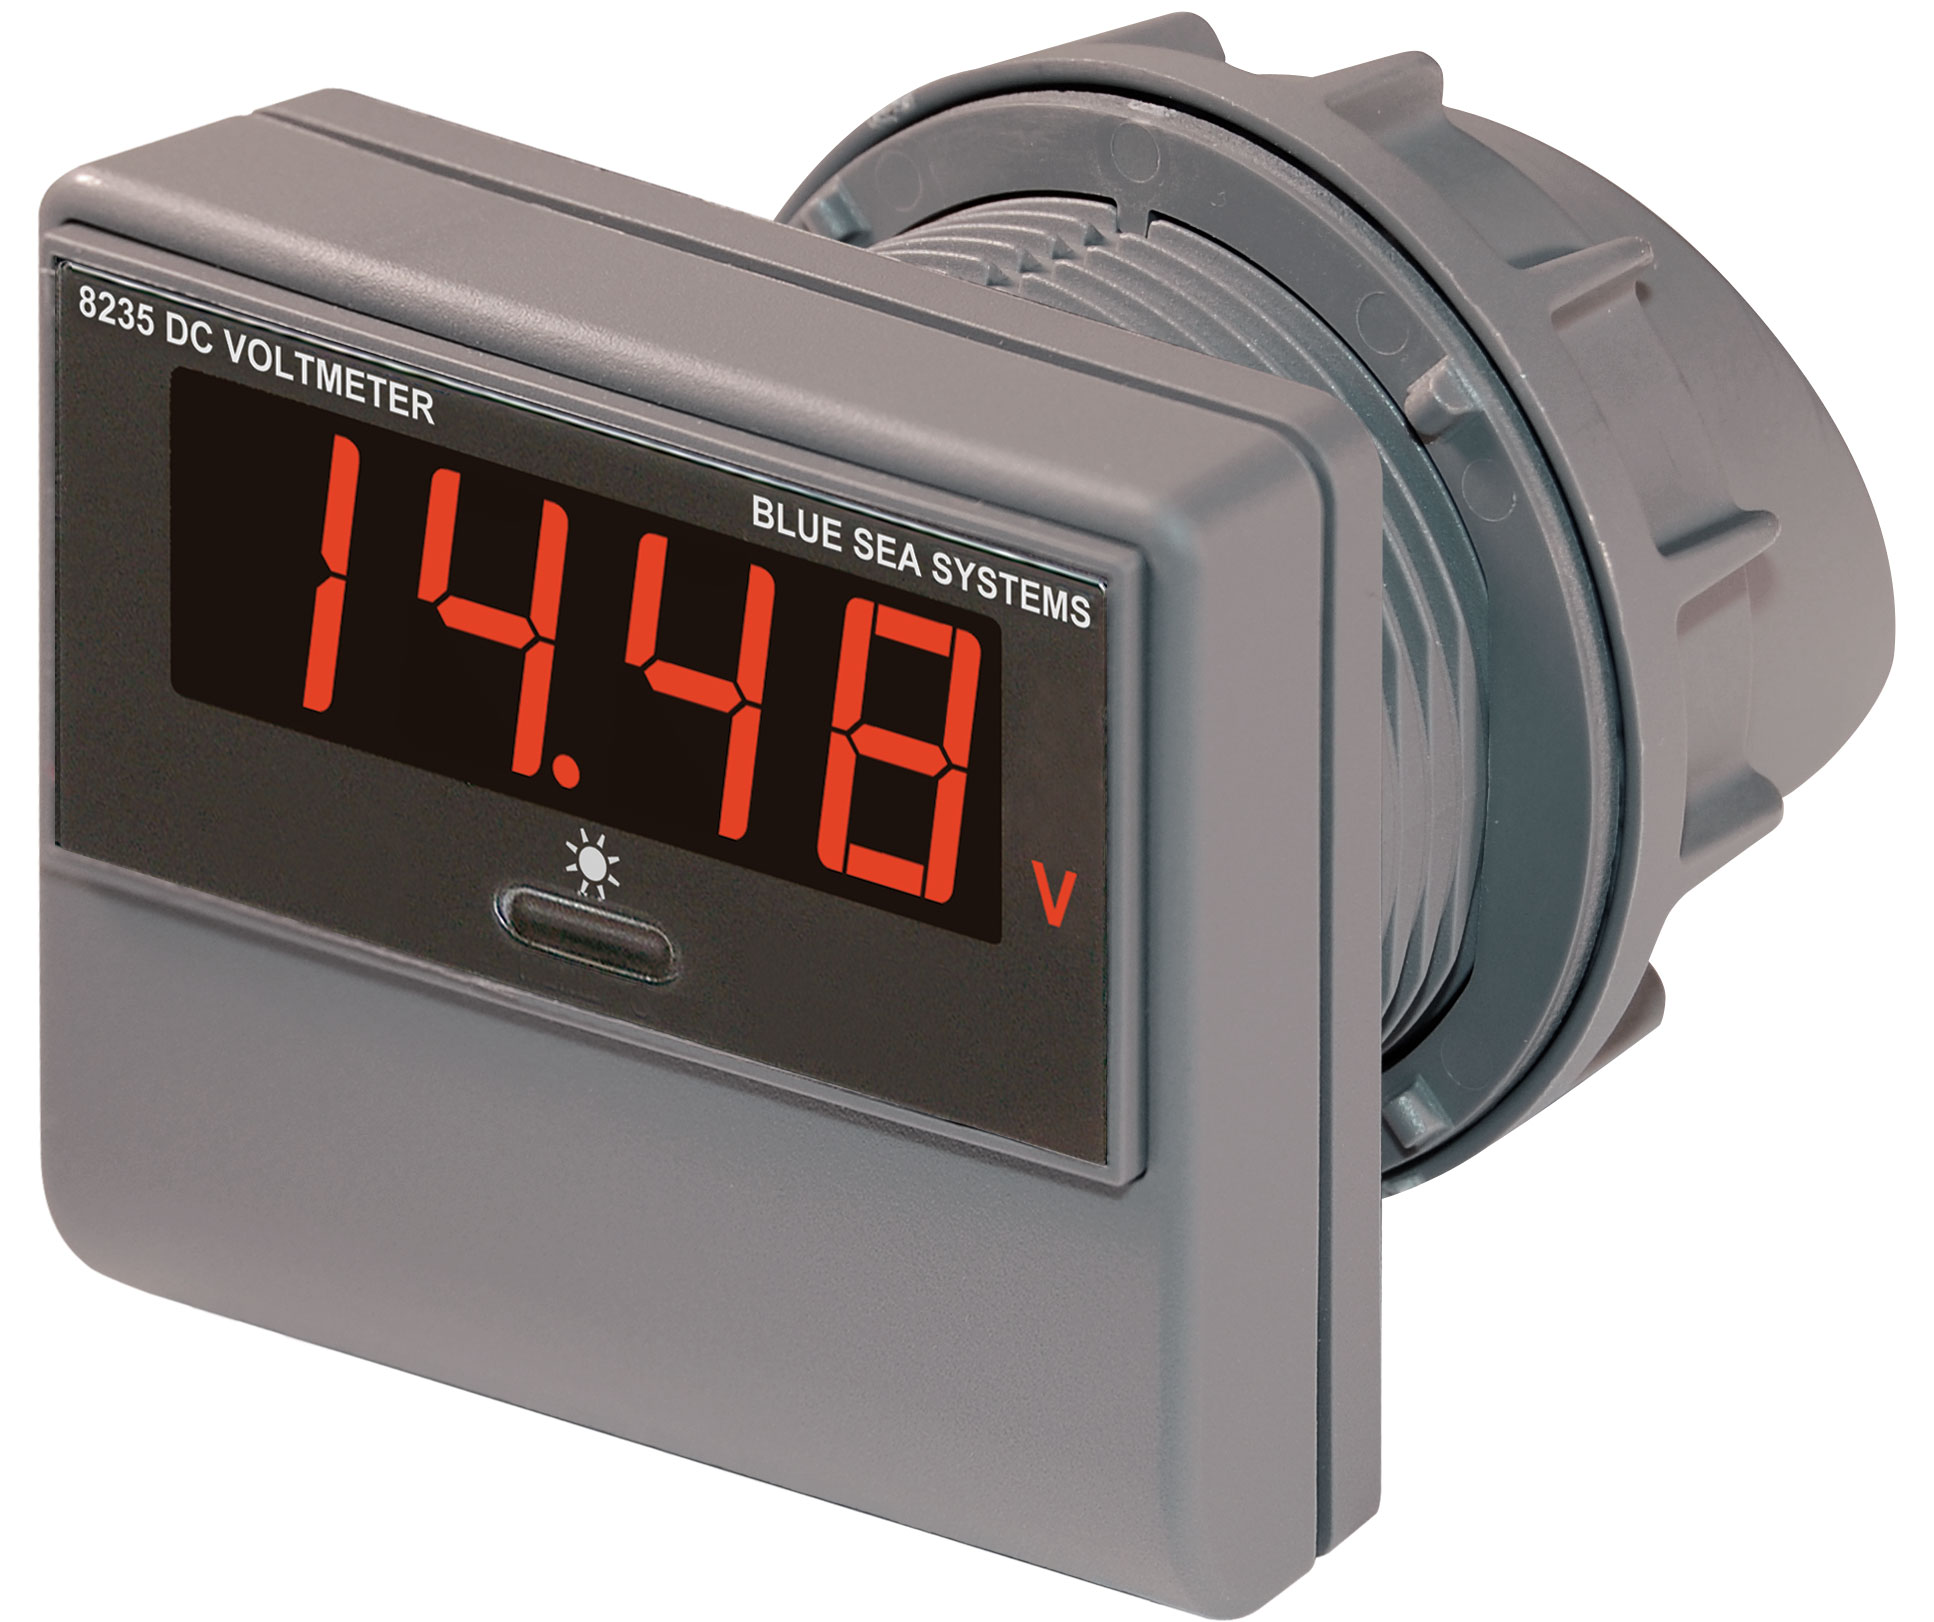 12 Volt Digital Voltmeter : Dc digital voltmeter to v blue sea systems